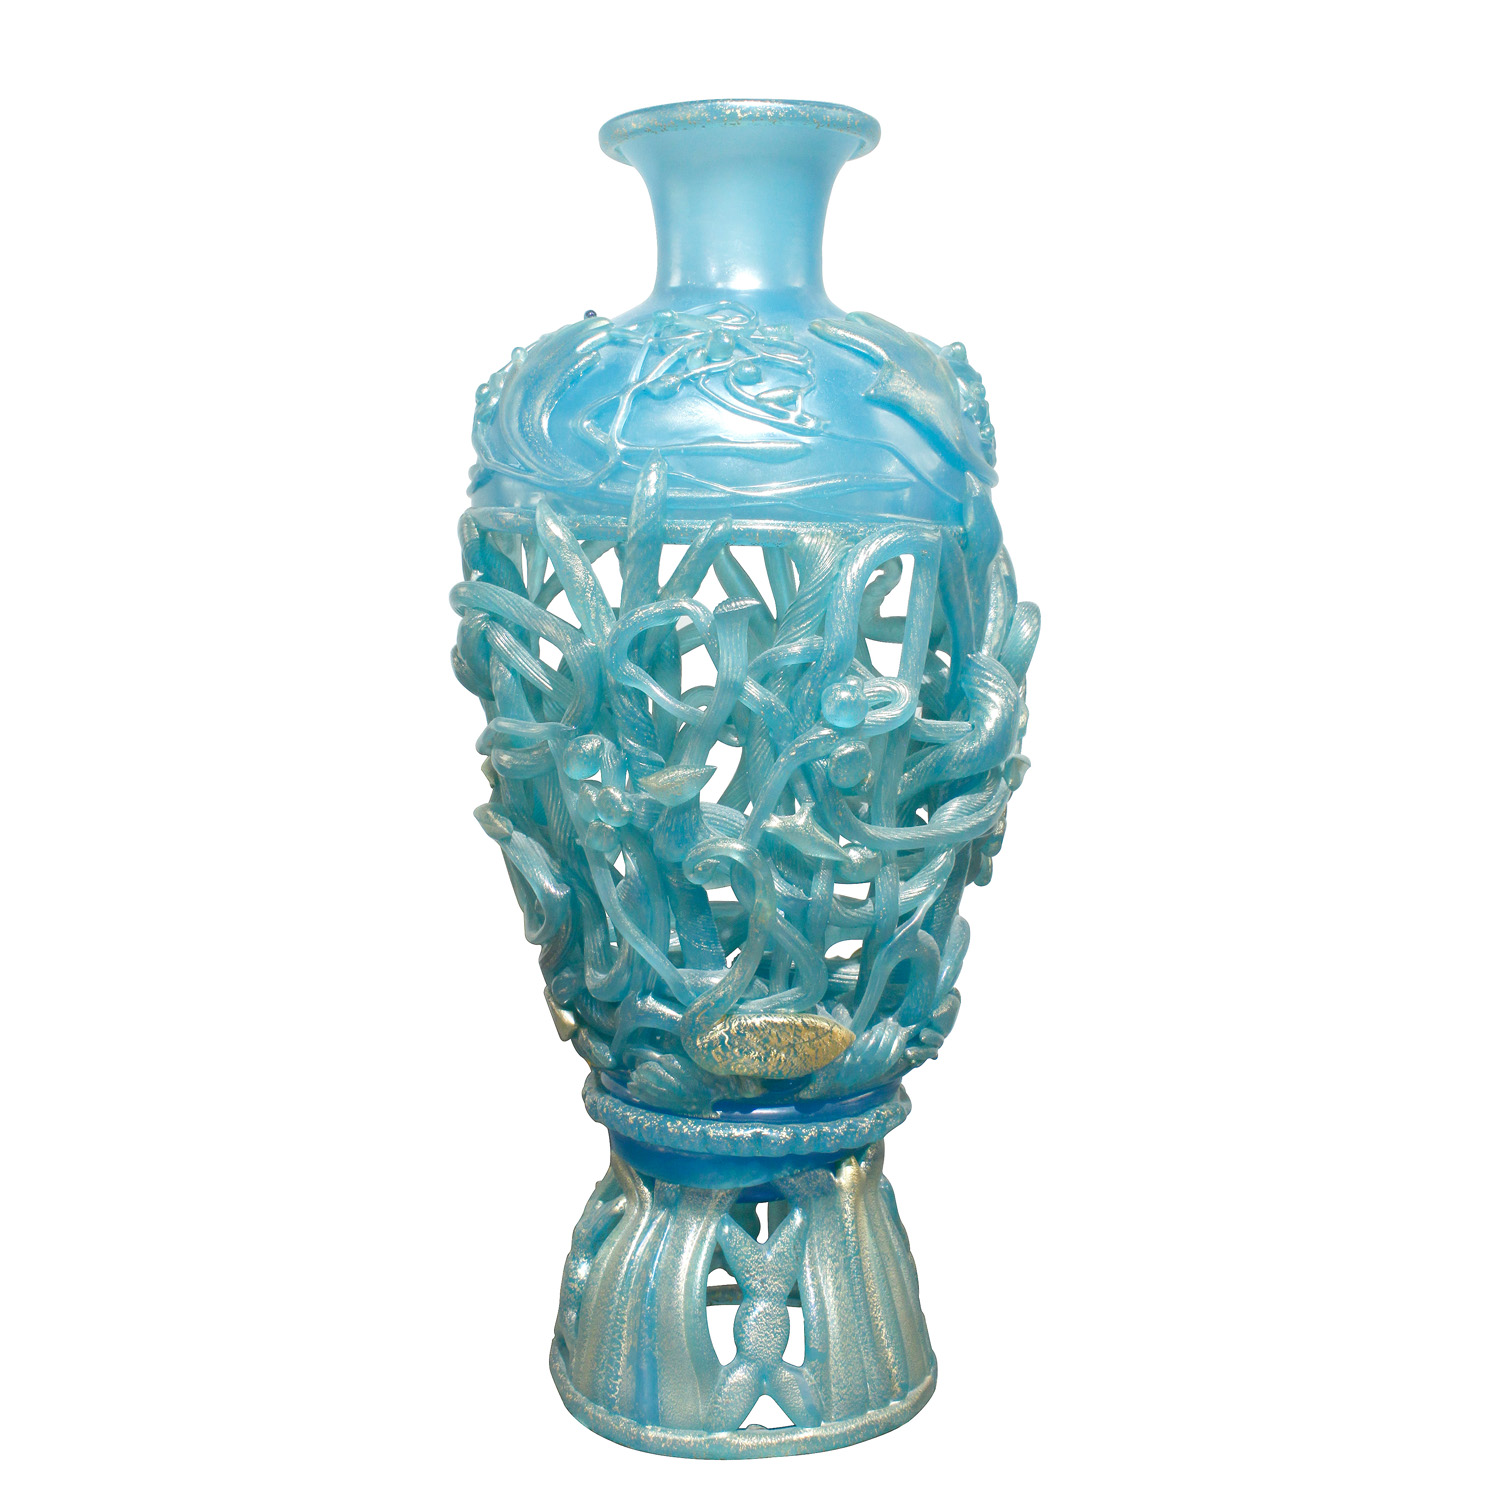 Nason 250 Ermanno blue masterpiece glass 64 main.jpg